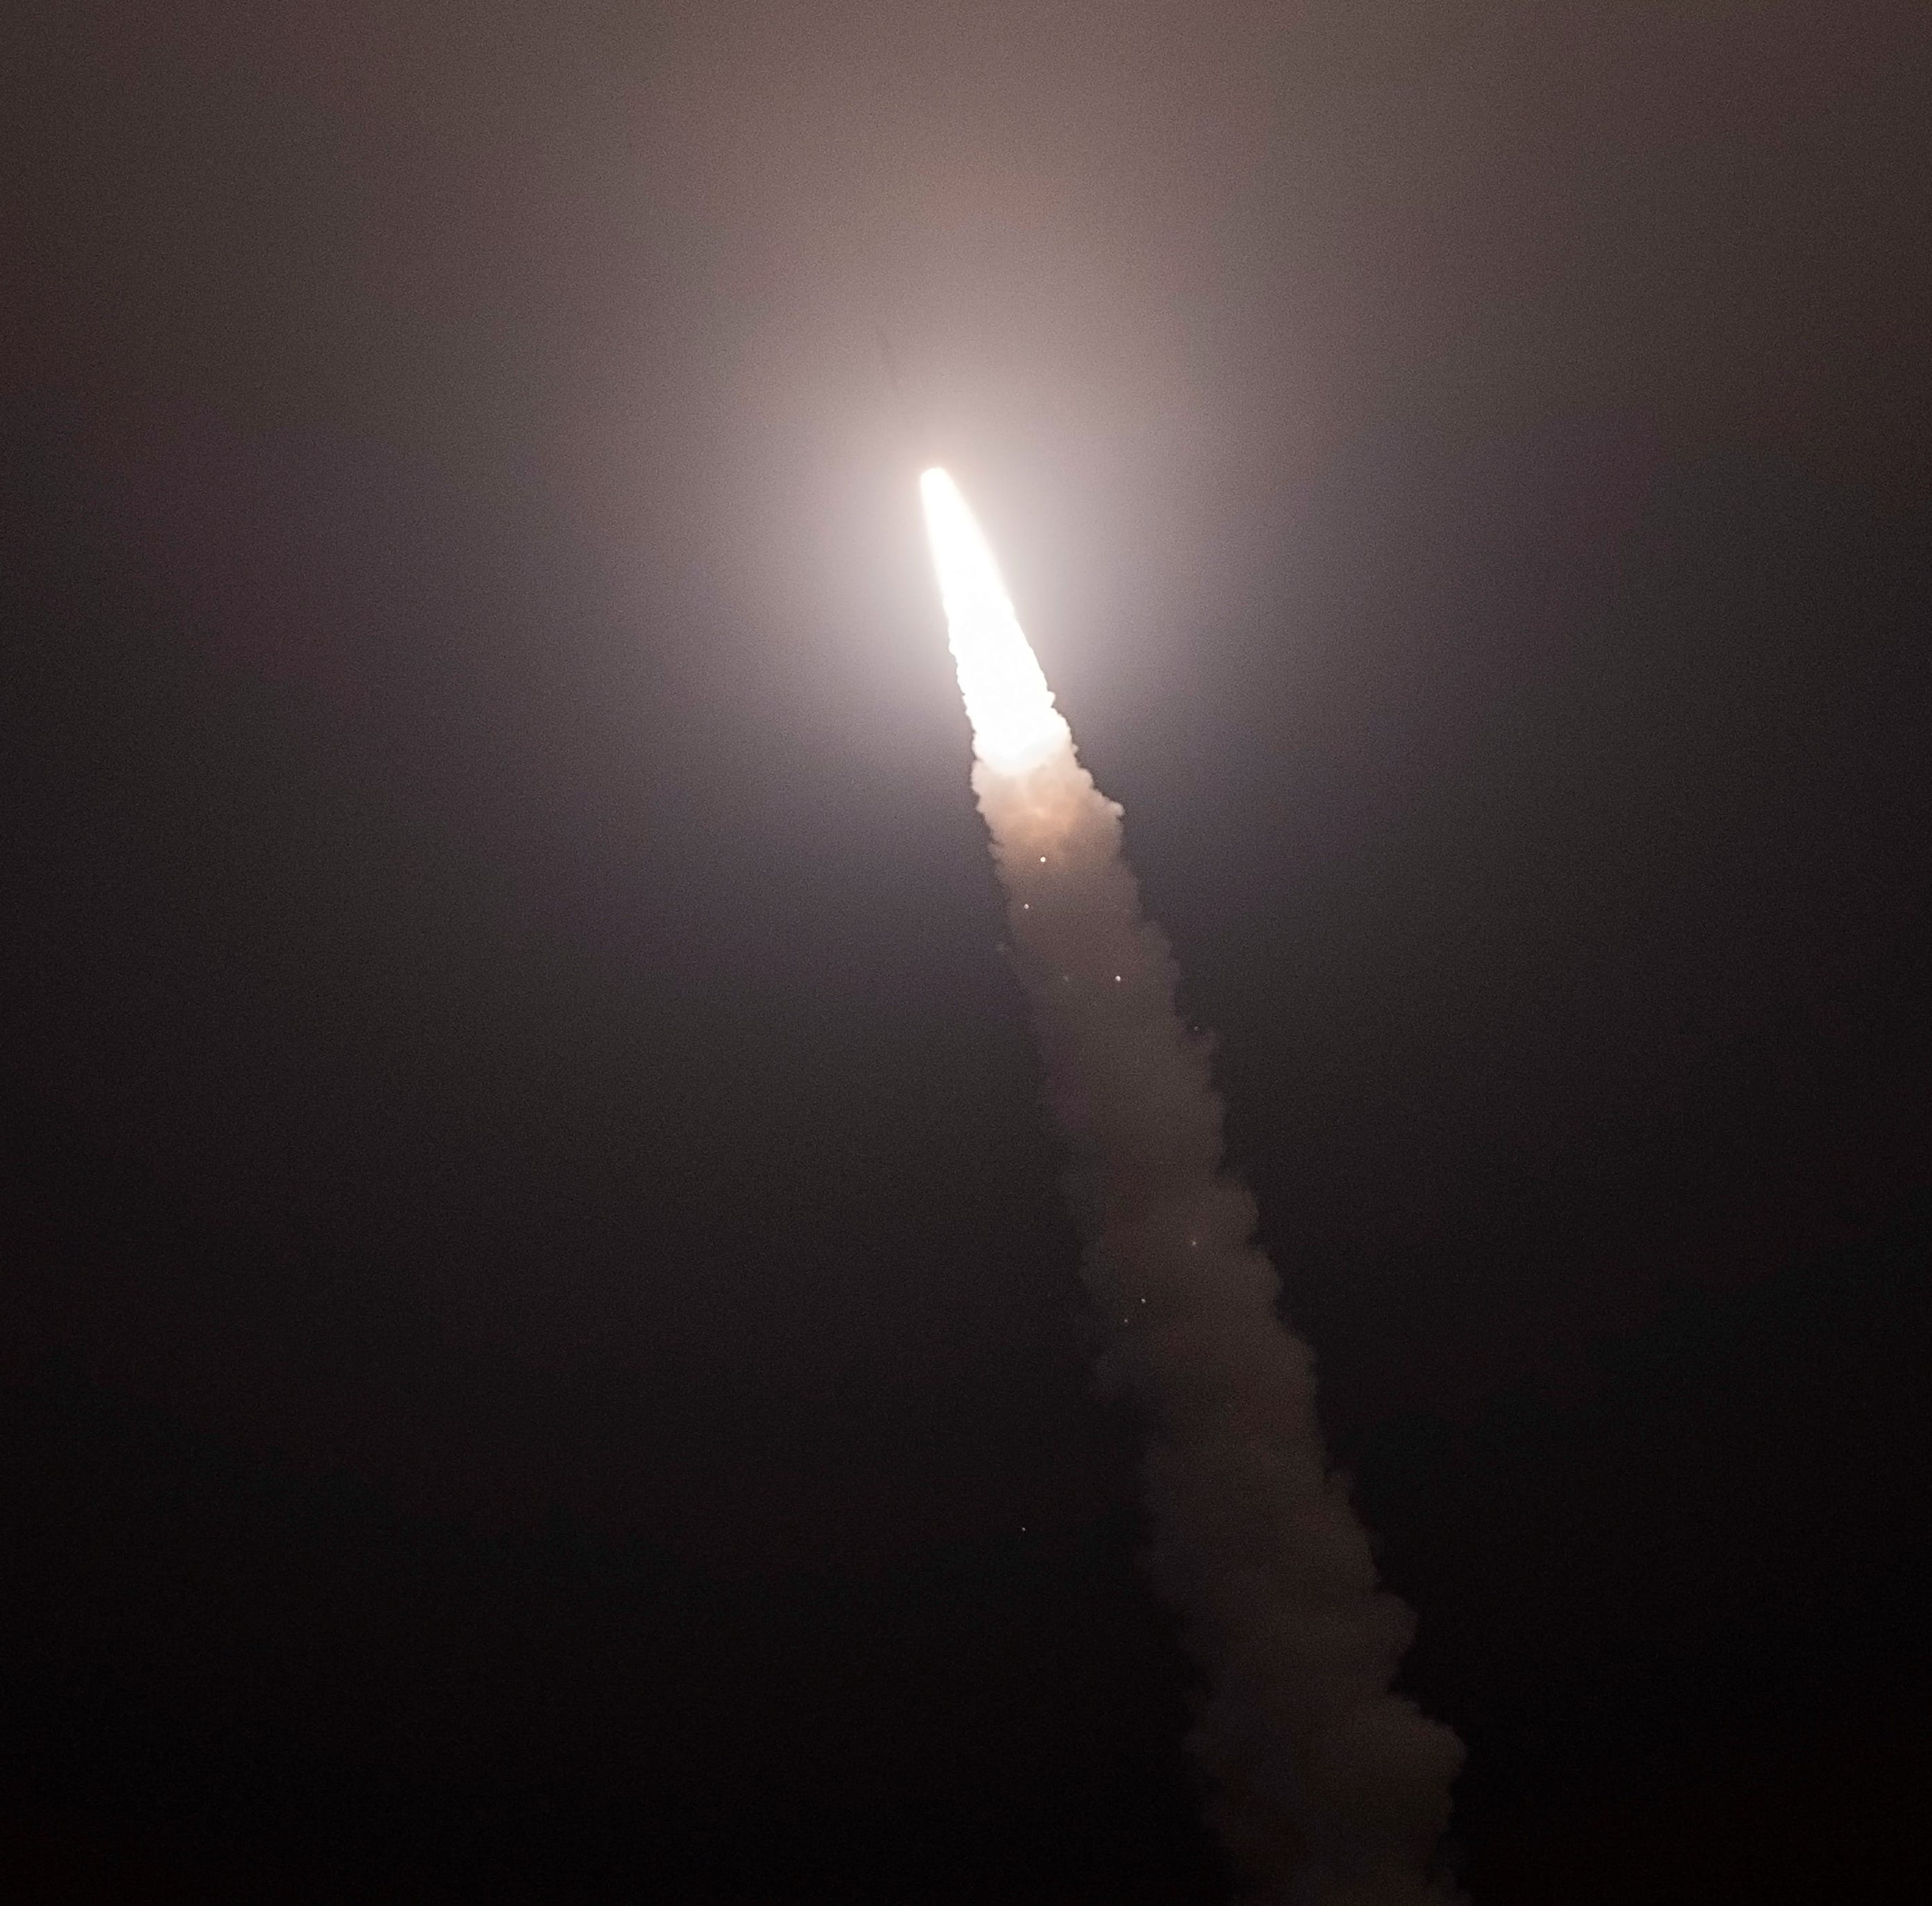 Unarmed missile launched in test from Vandenberg Air Force Base